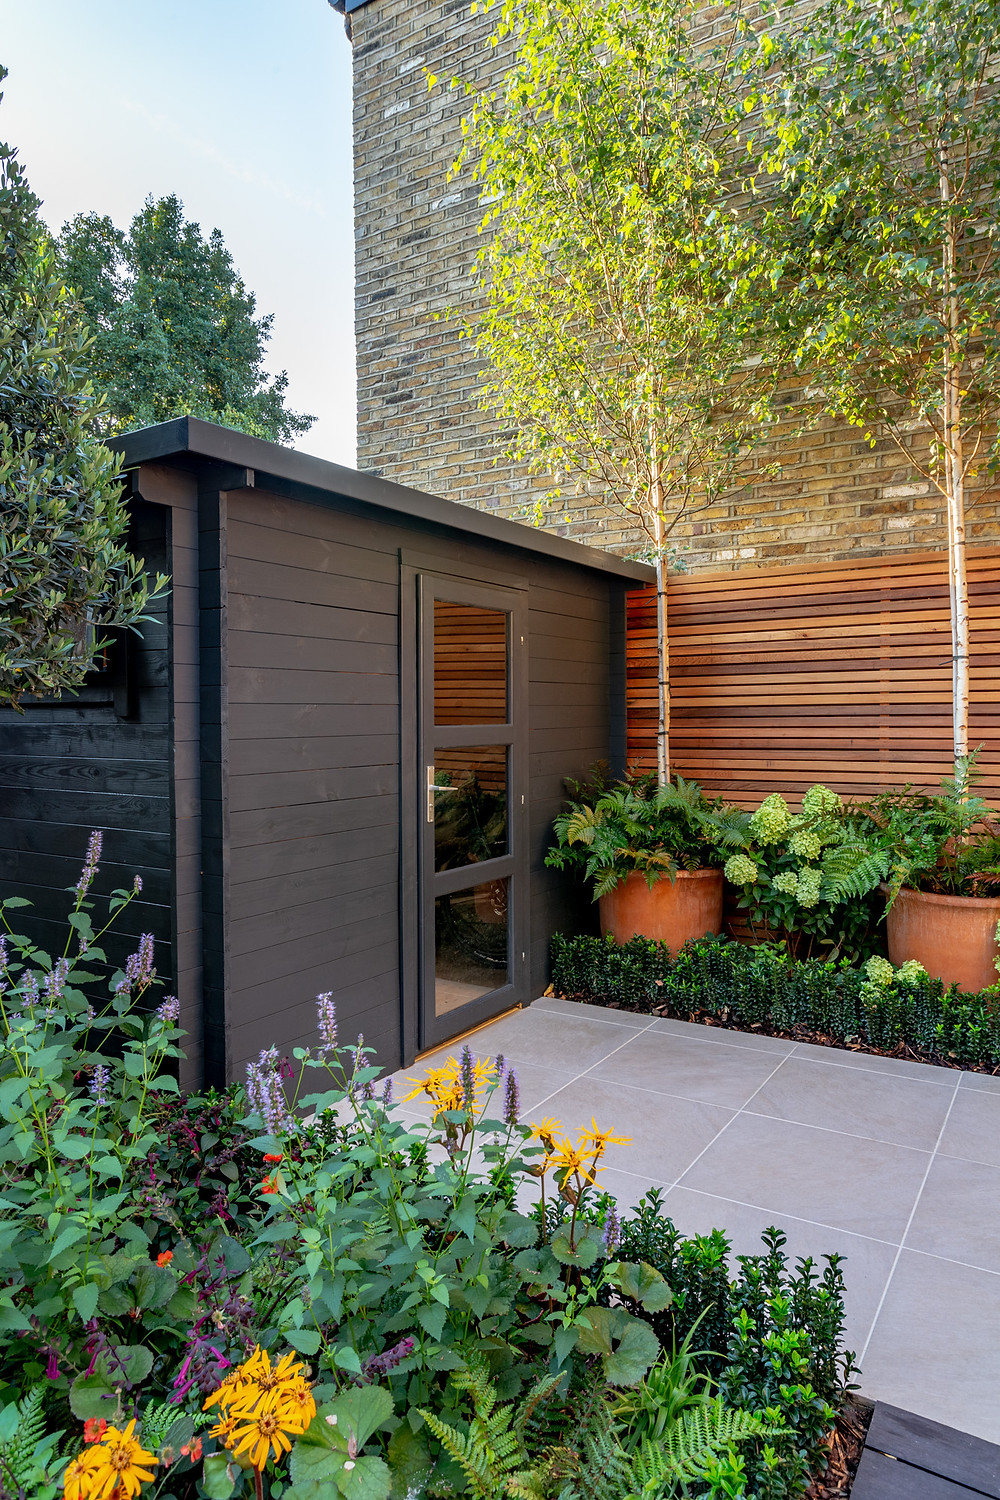 Large storage unit with door for back garden